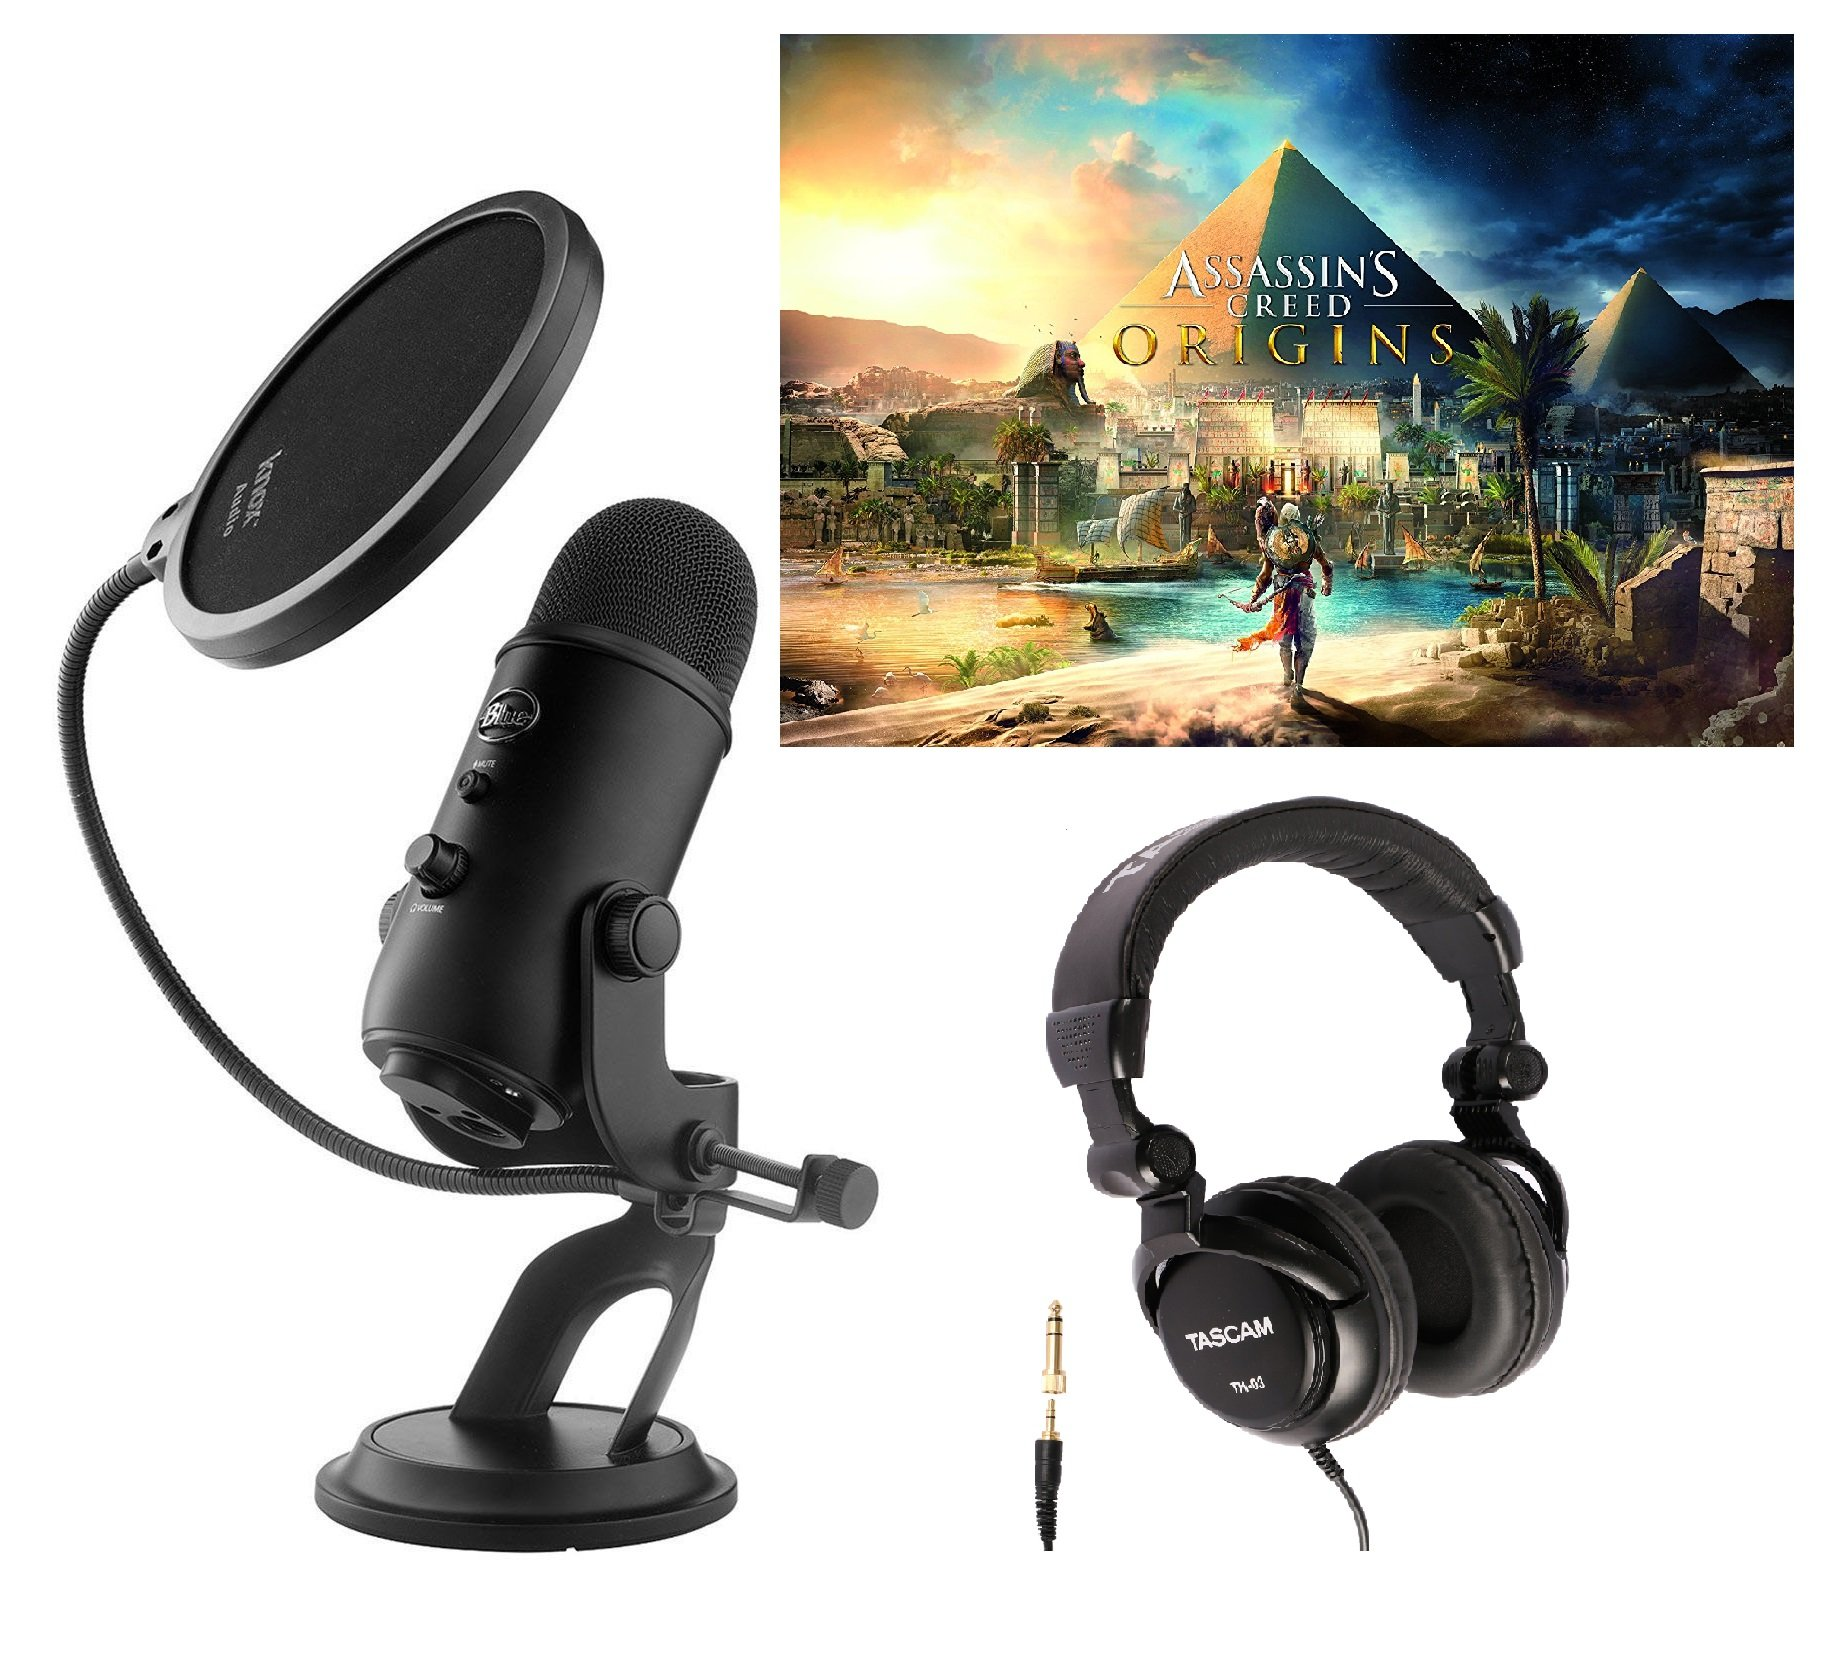 Blue Microphones Blackout Yeti Microphone w/ Assassin's Creed Origins PC Game, Pop Filter, & Headphones